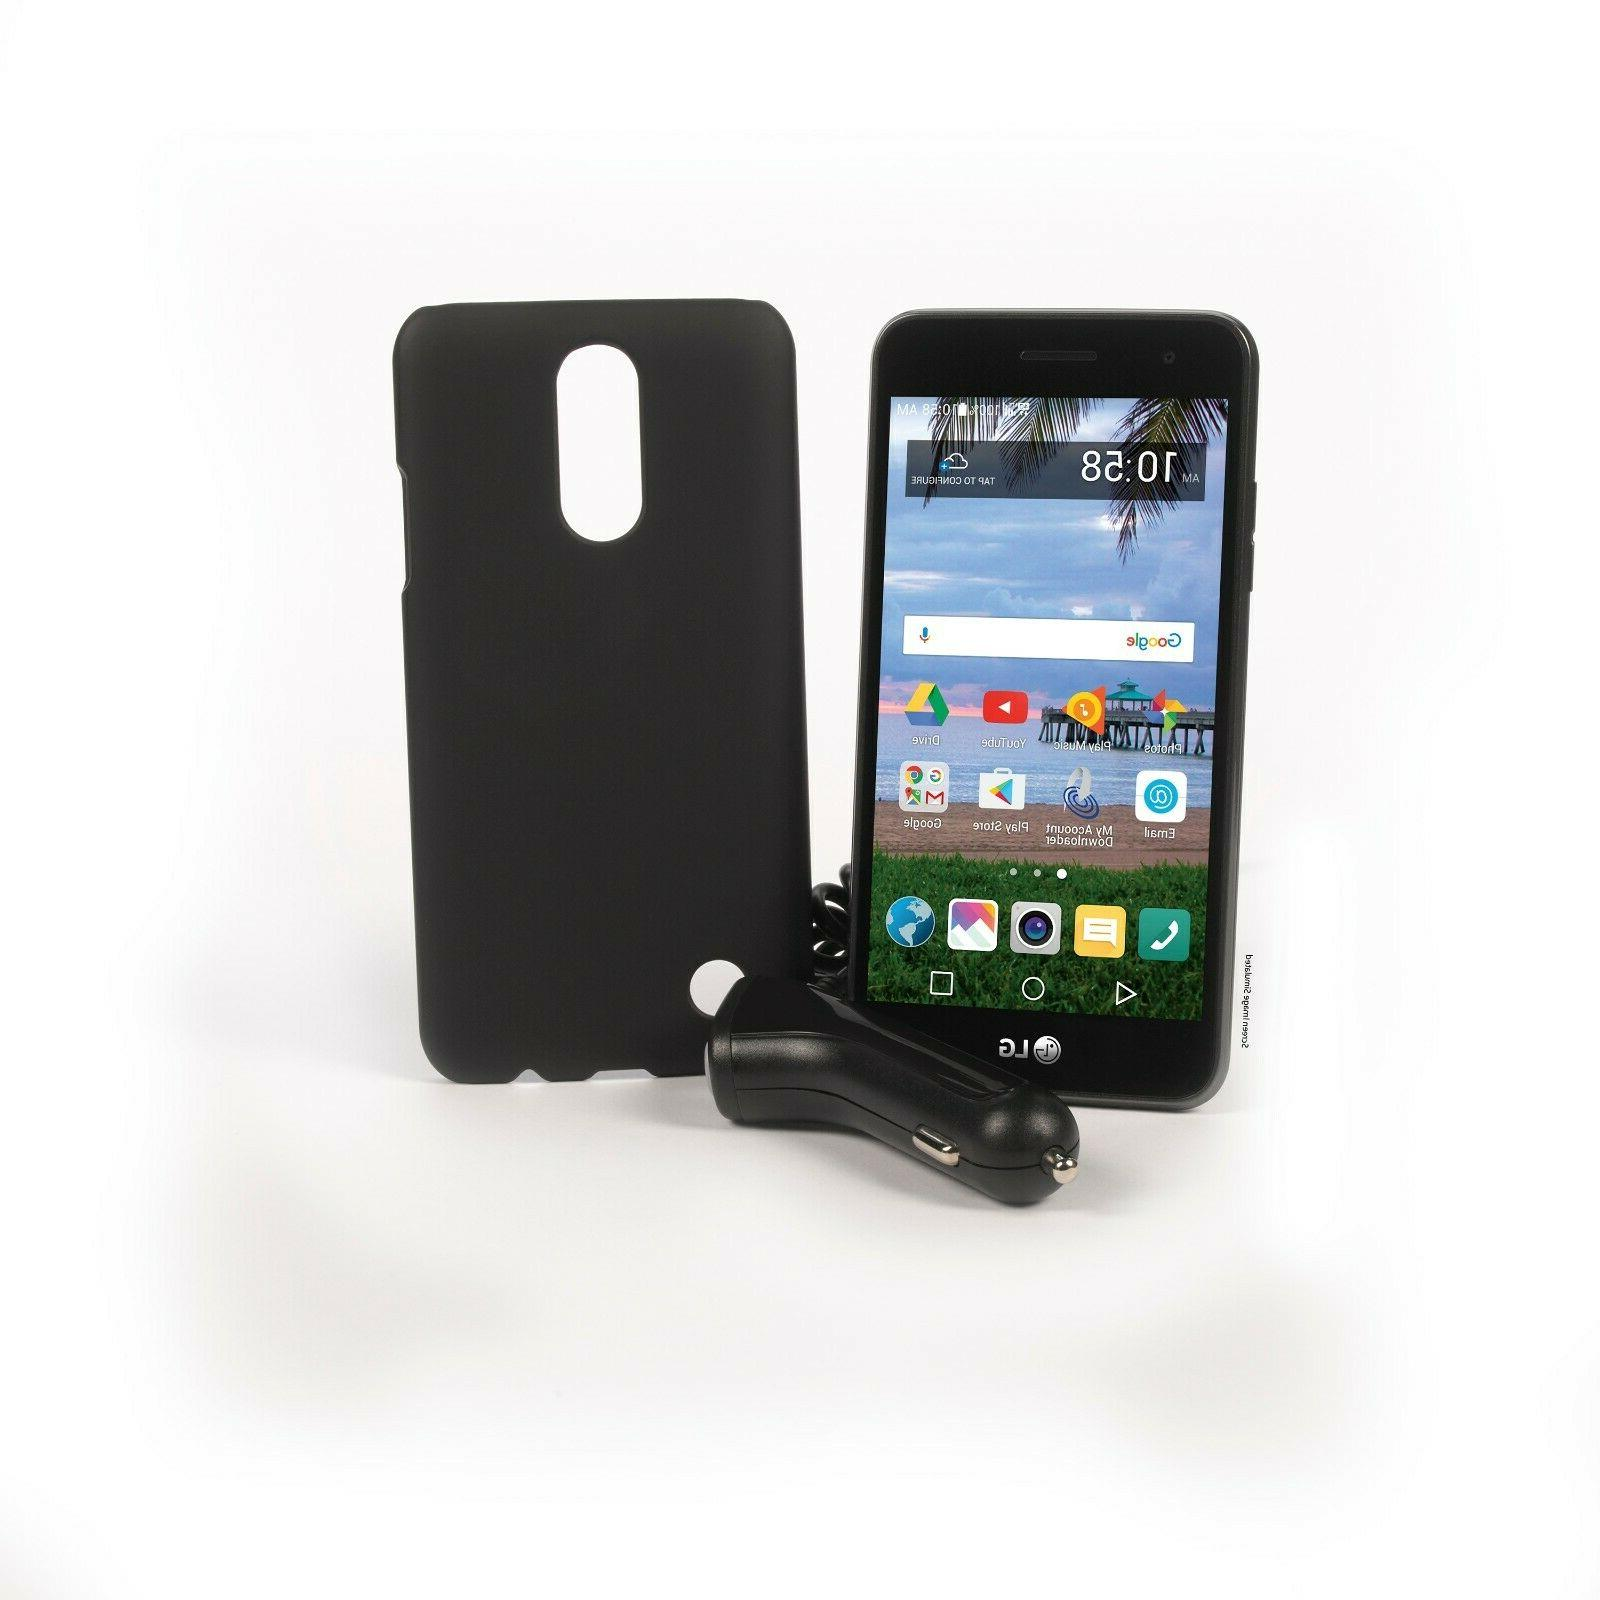 tracfone rebel 3 cell phone 1 year